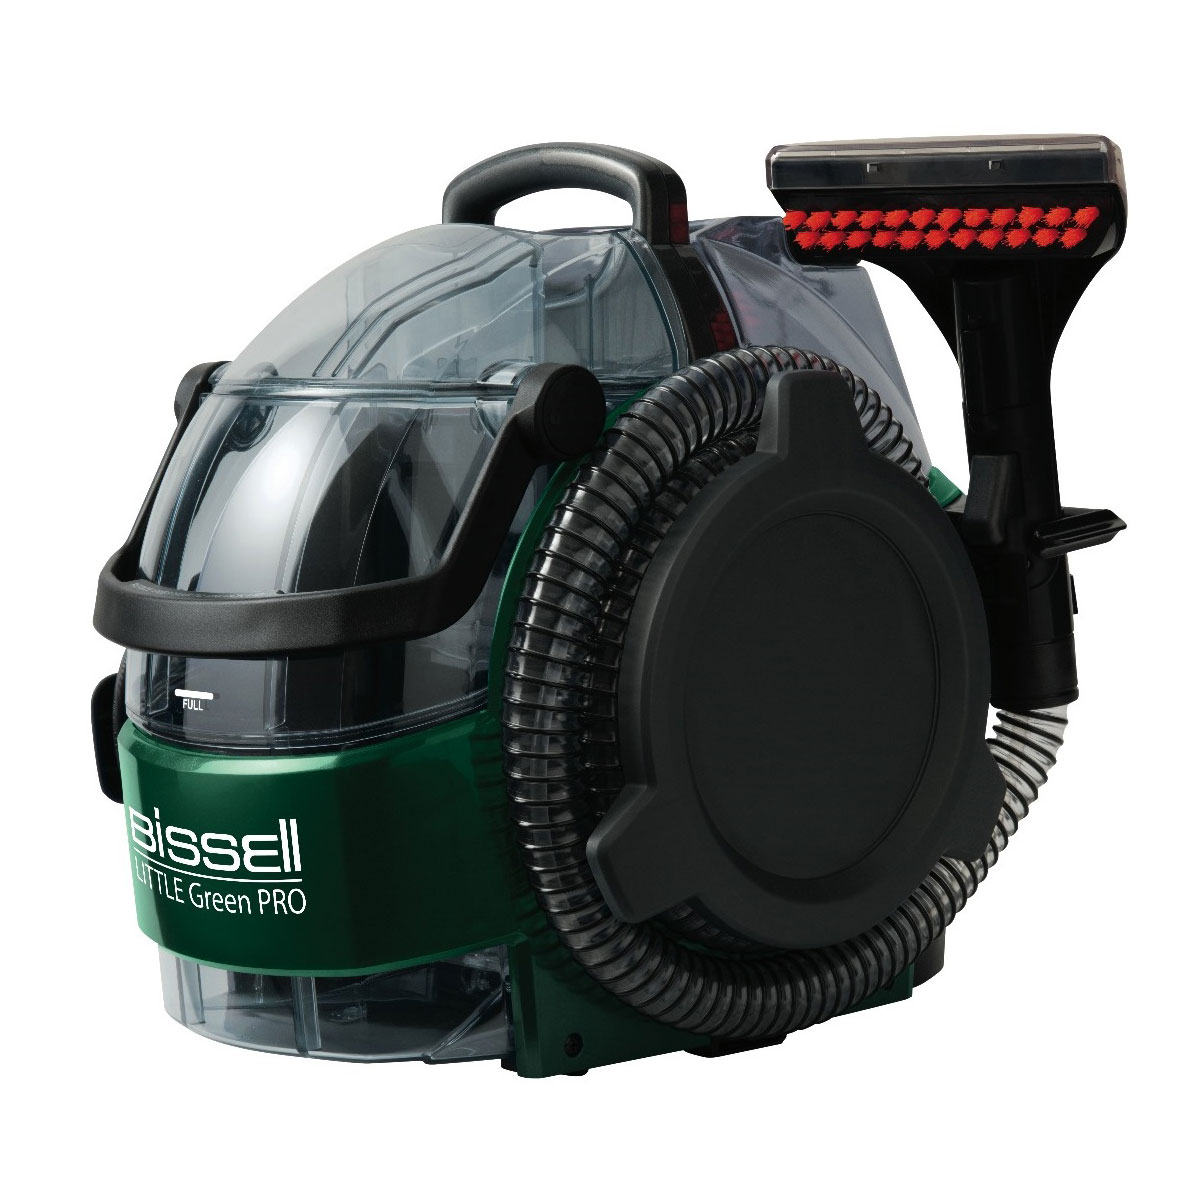 Bissell Bgss1481 Little Green Pro Commercial Spot Cleaner